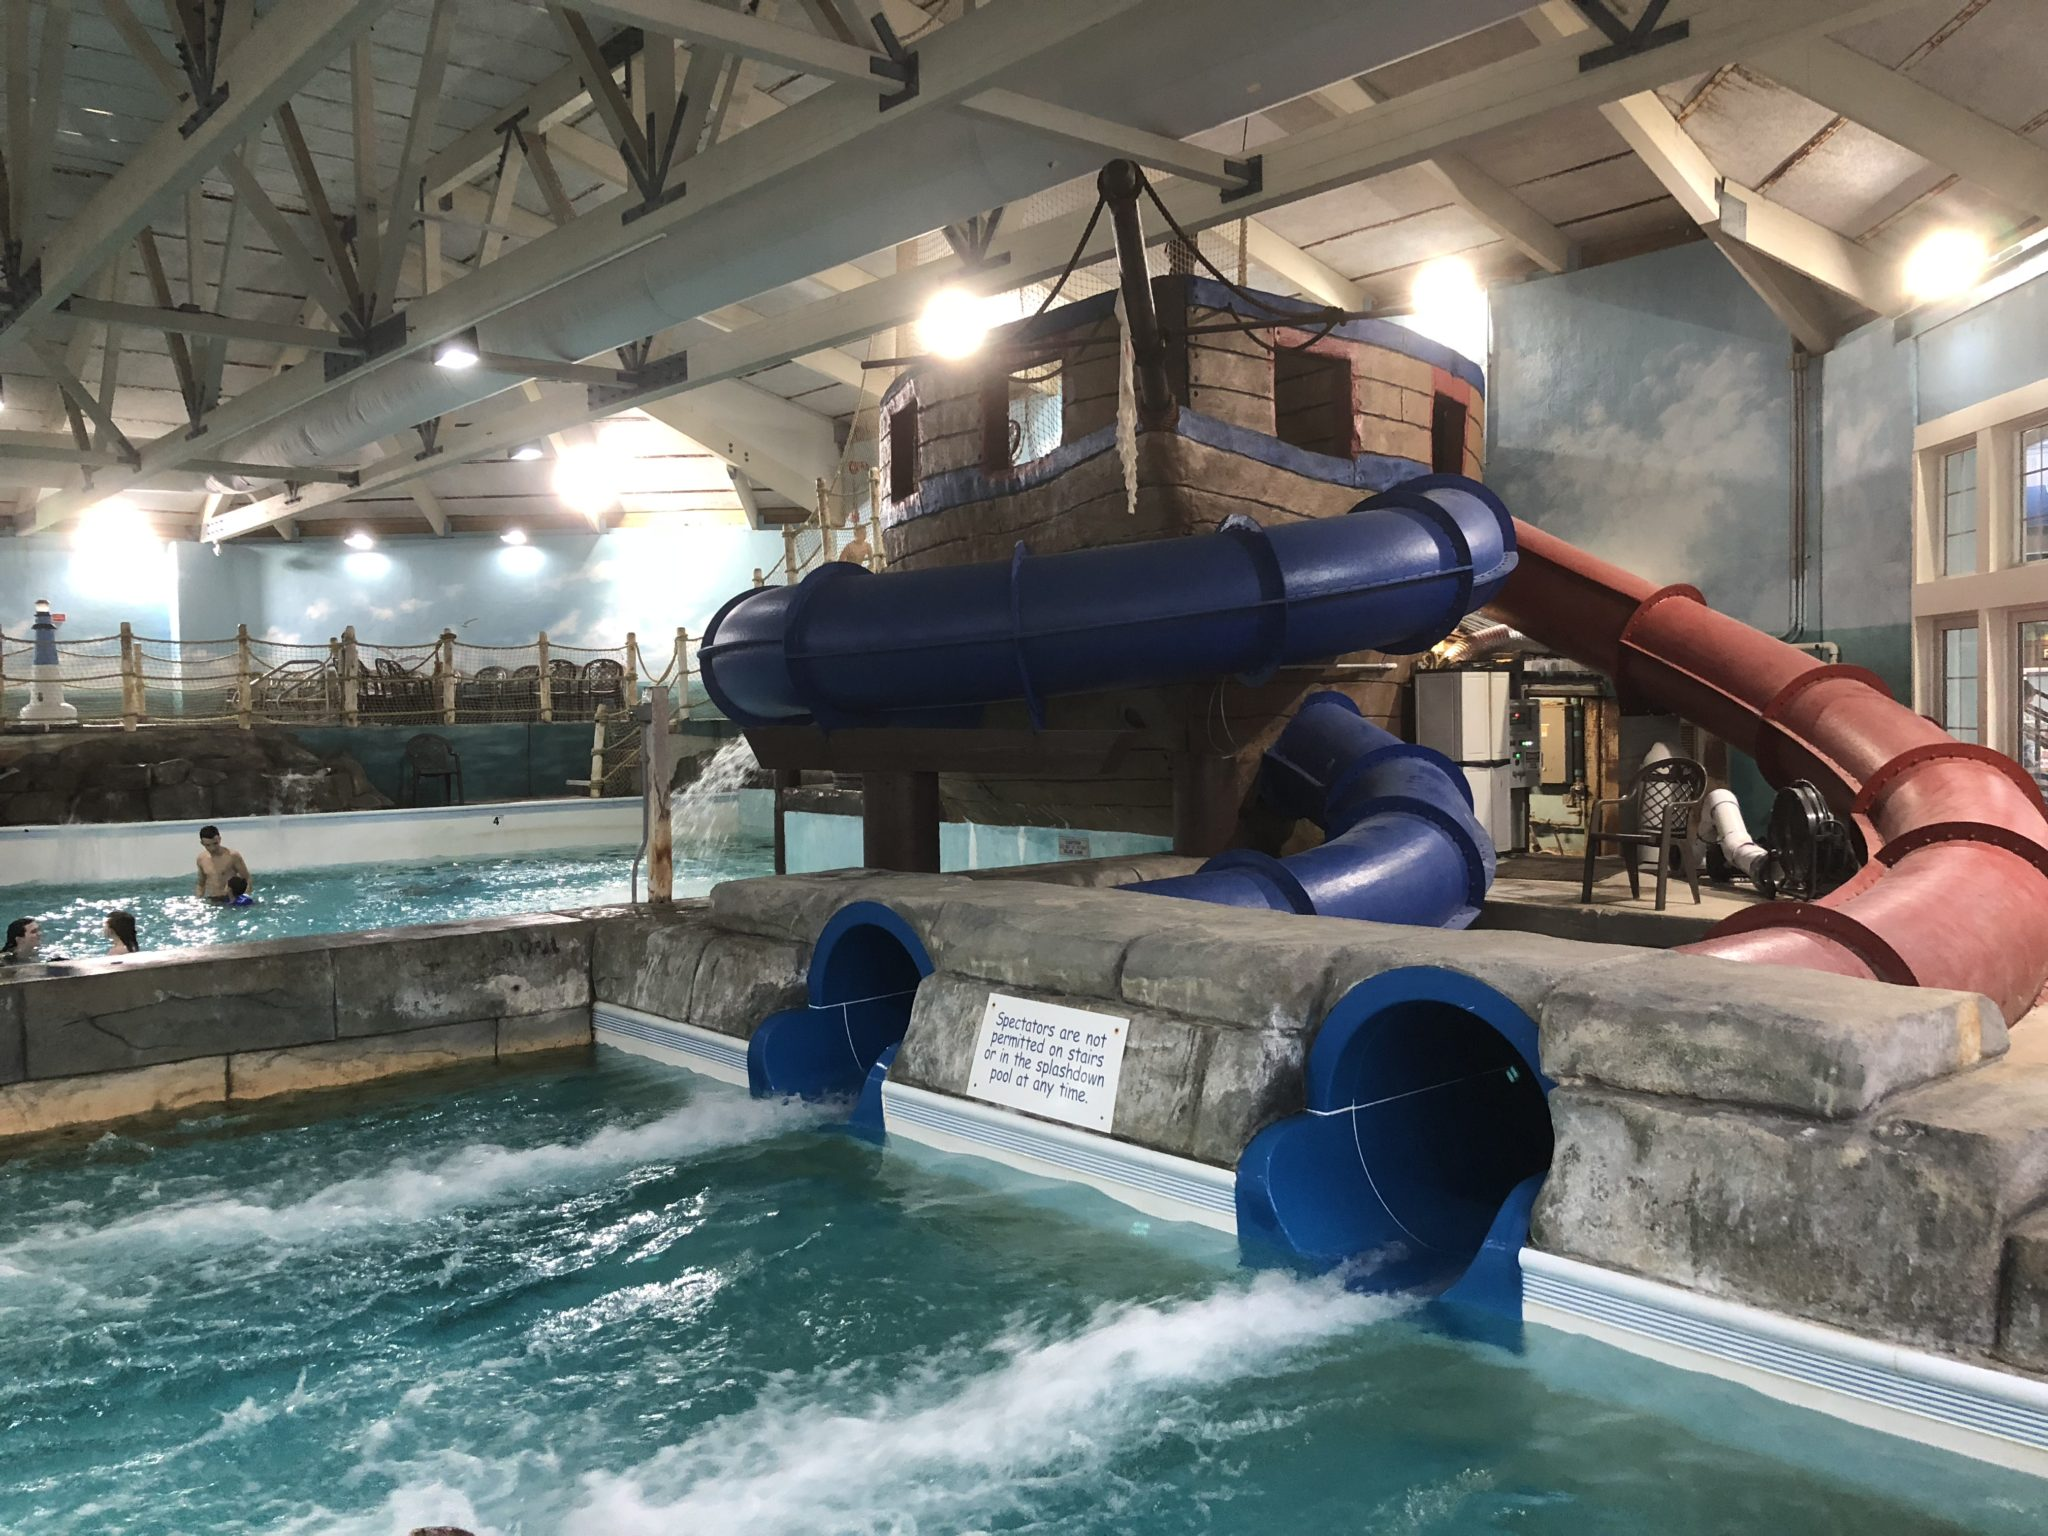 Located in the heart of Cape Cod, The Cape Codder Resort and Spa makes a wonderful spot for a family getaway with their indoor water park and more!